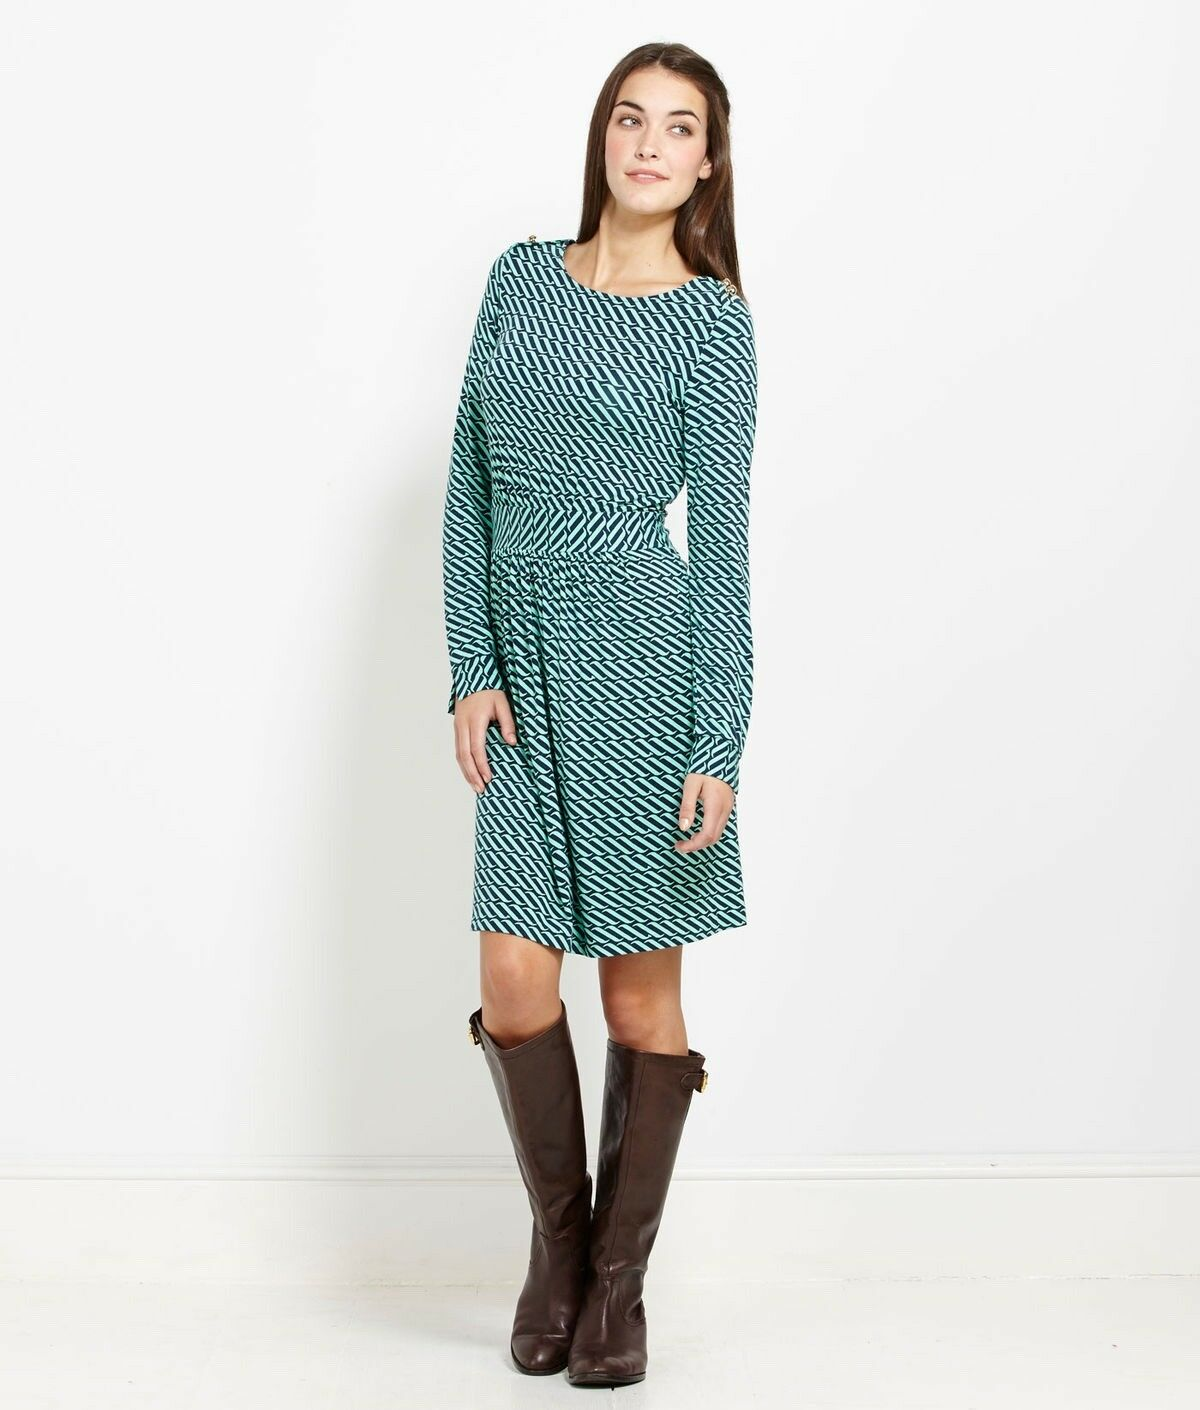 Vineyard Vines Long Sleeve Ocean Swell Dress in Green and bluee- Size XL- EUC